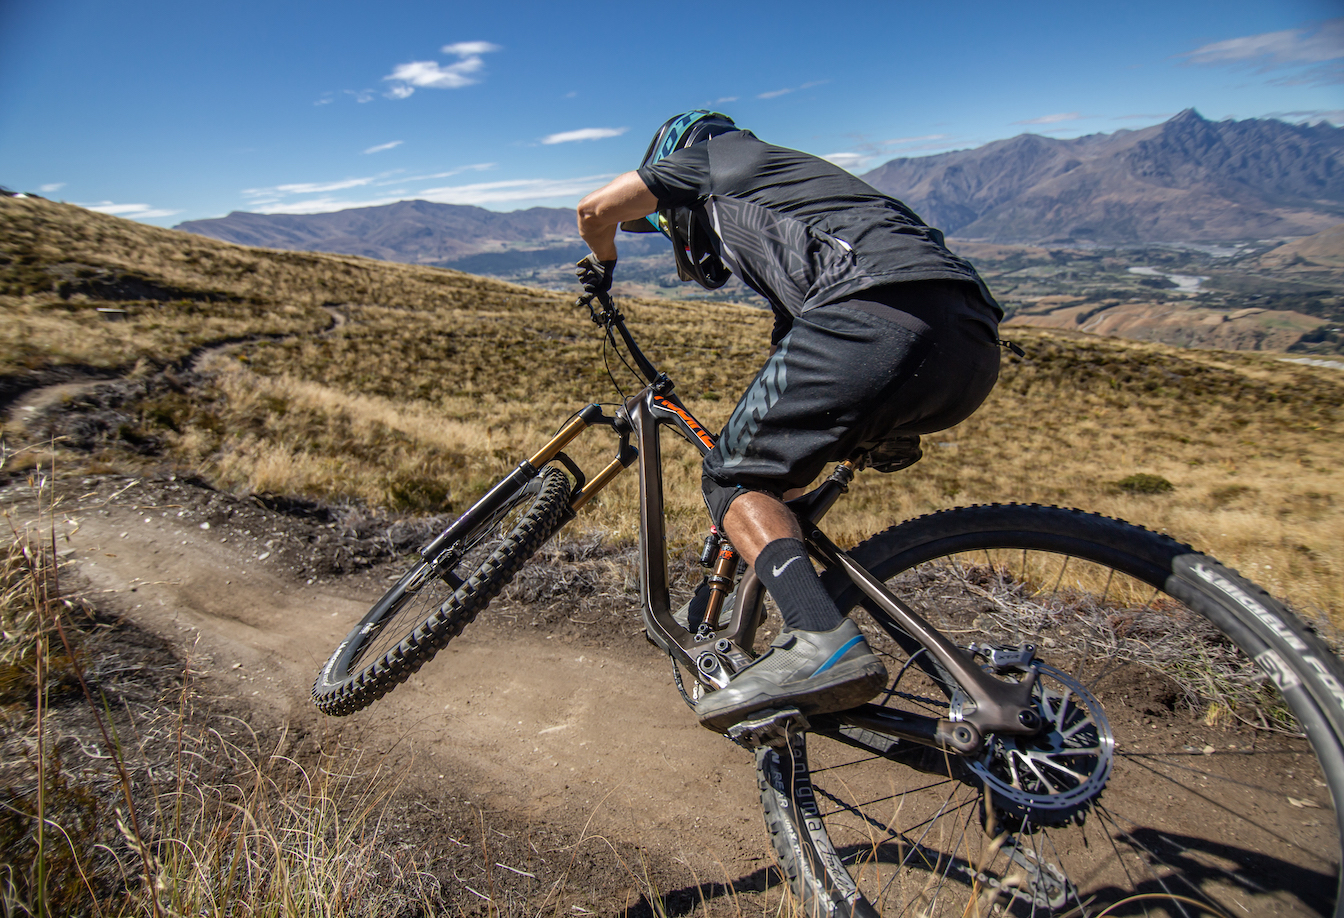 Introducing the 2020 NS Define Trail and Enduro models - Coming soon to Australia